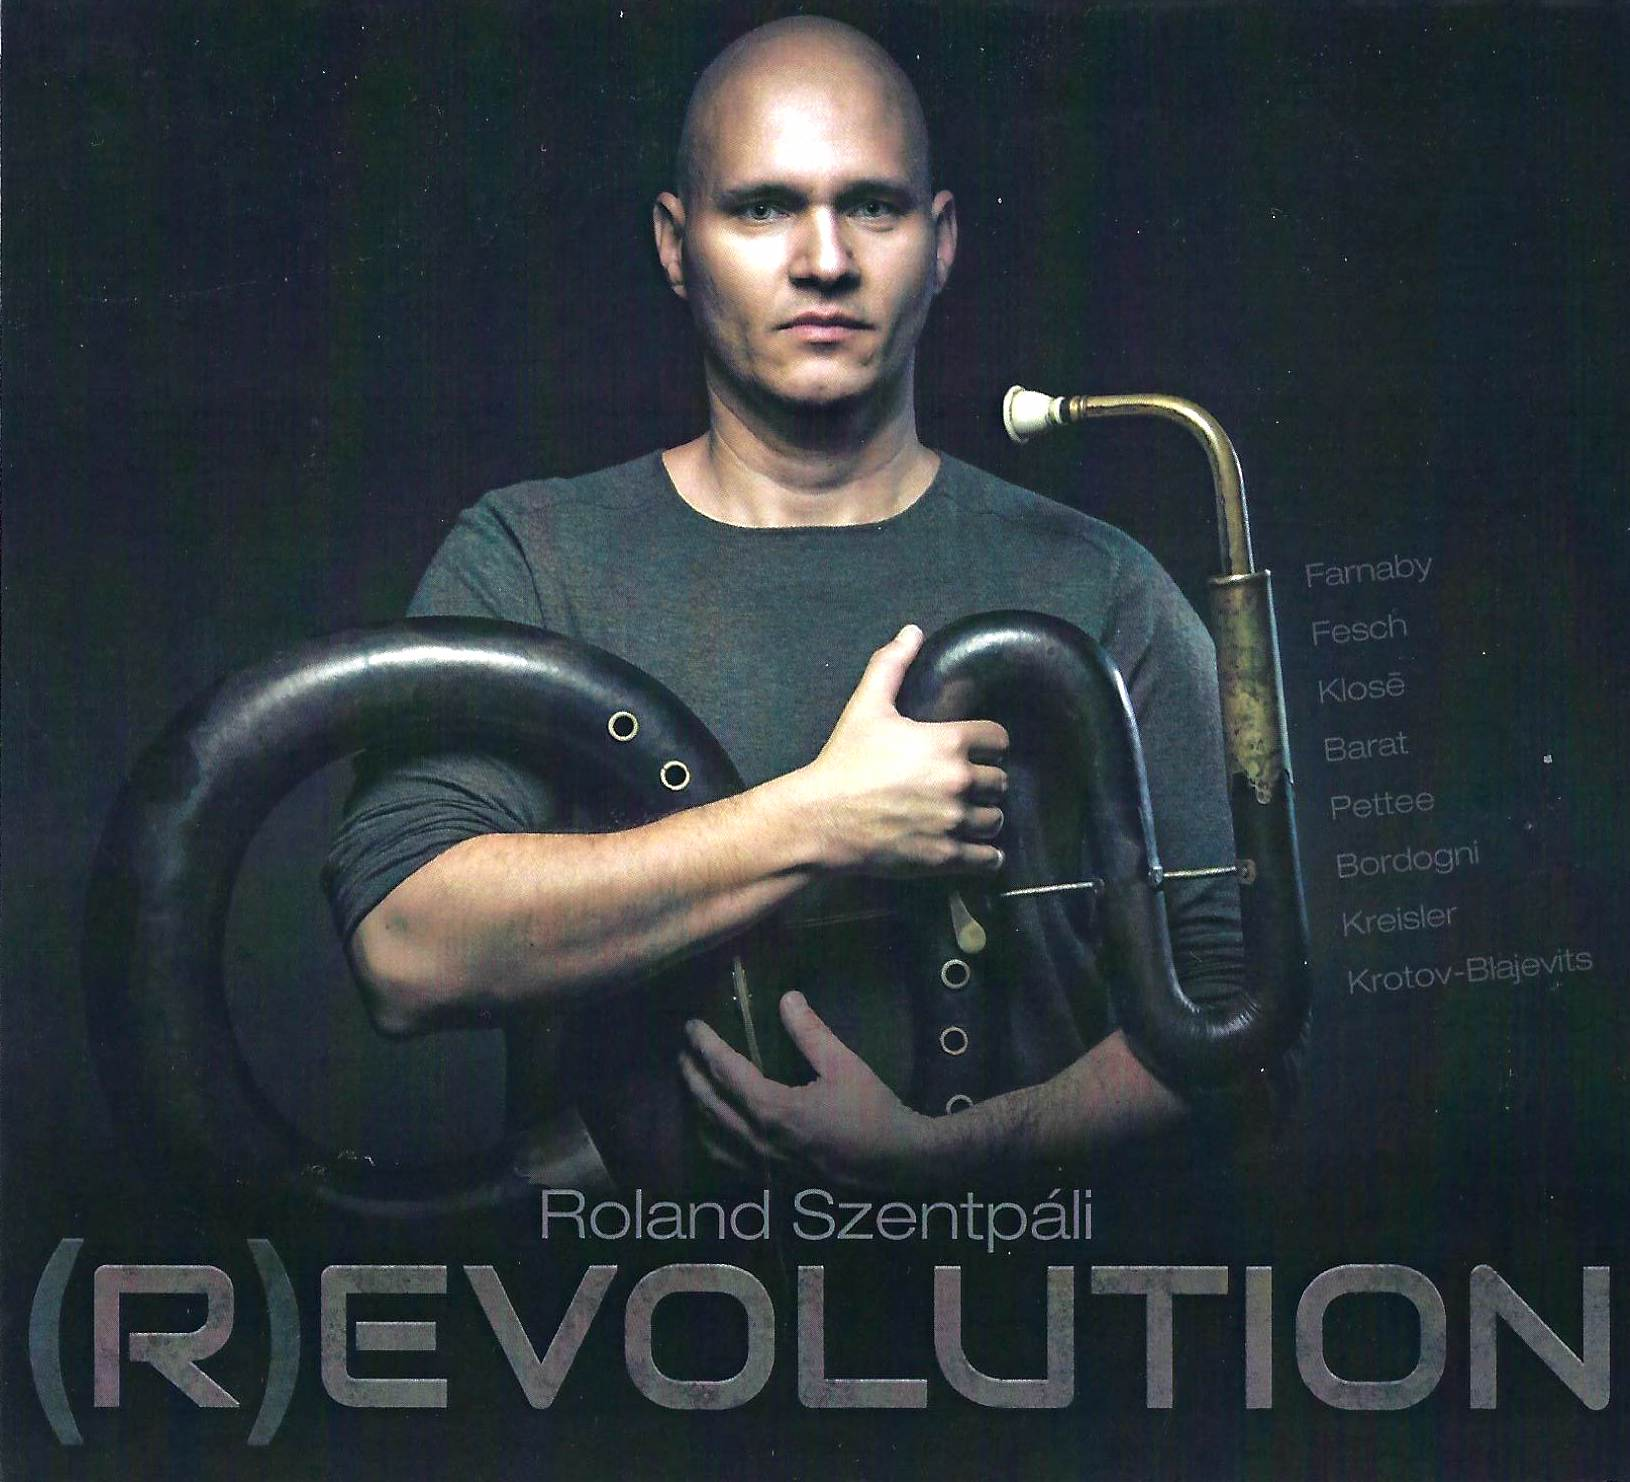 CD - (R)EVOLUTION - Roland Szentpali